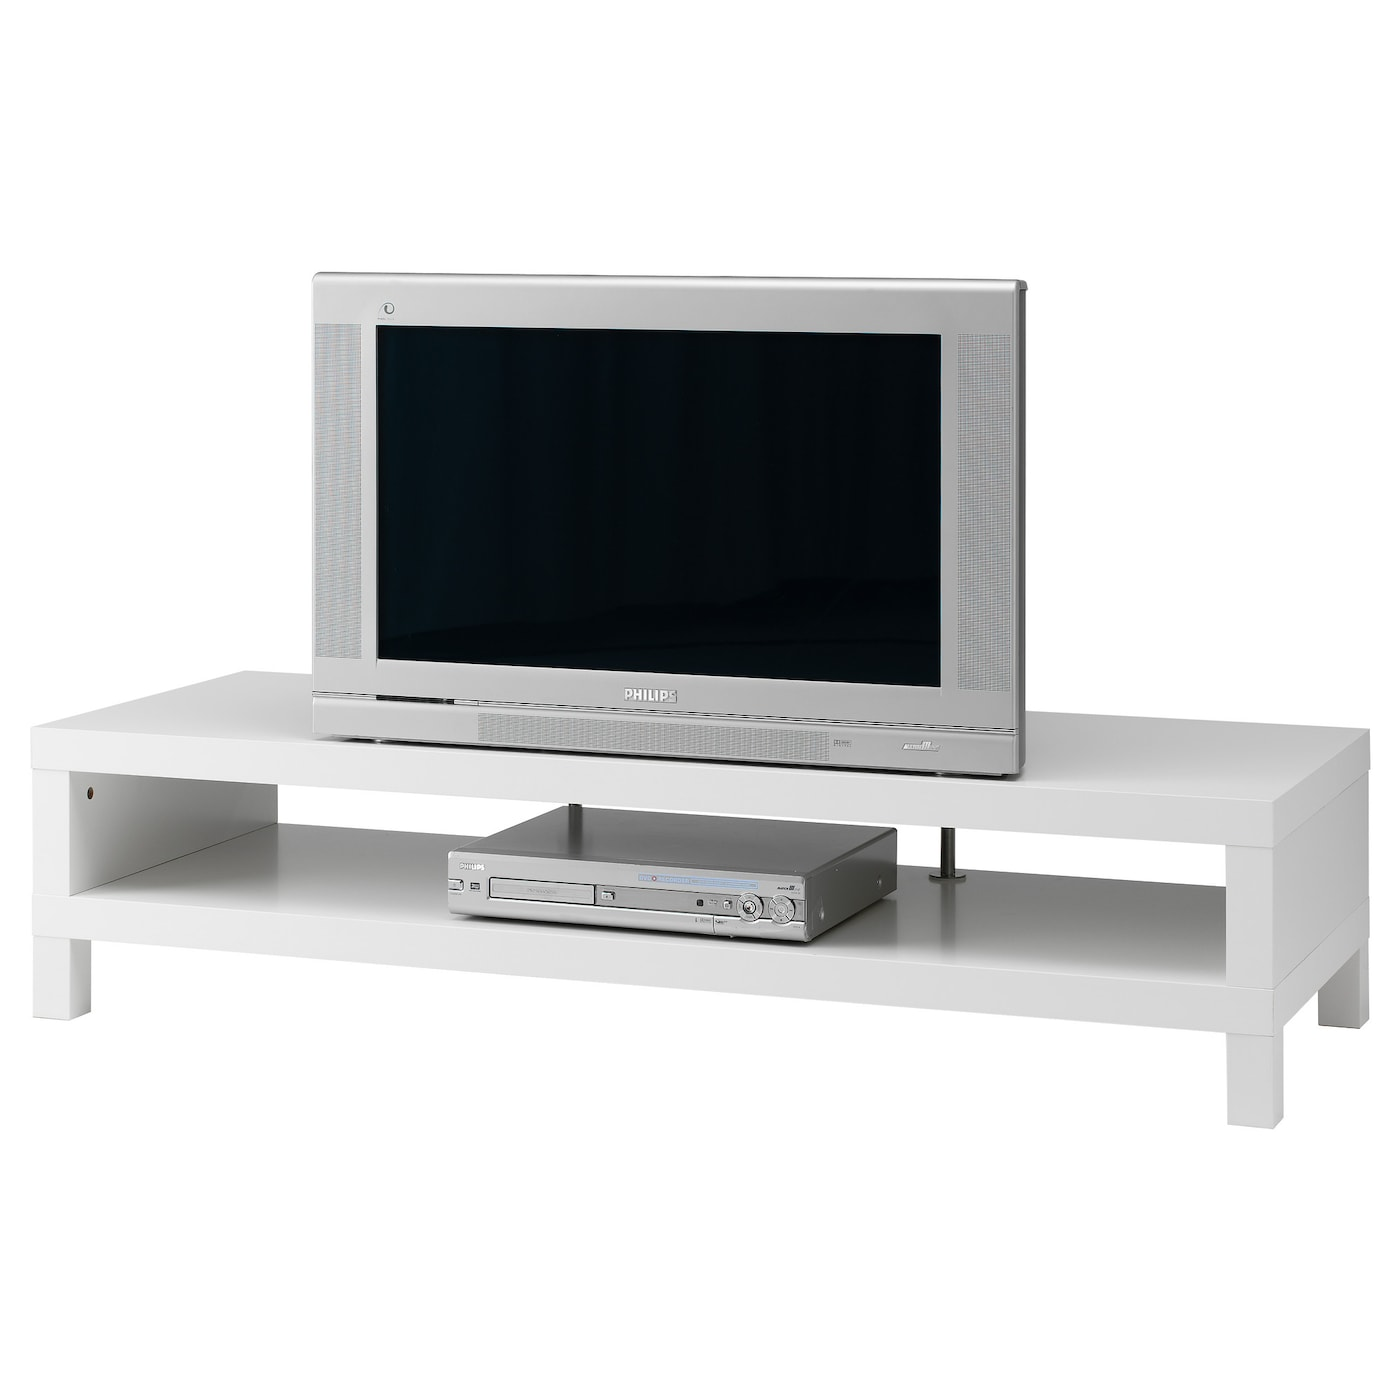 Meuble Support Tv Ikea - Tv Tables Tv Benches Ikea[mjhdah]http://www.ikea.com/gb/en/images/products/brimnes-tv-bench-white__0460582_pe606874_s5.jpg